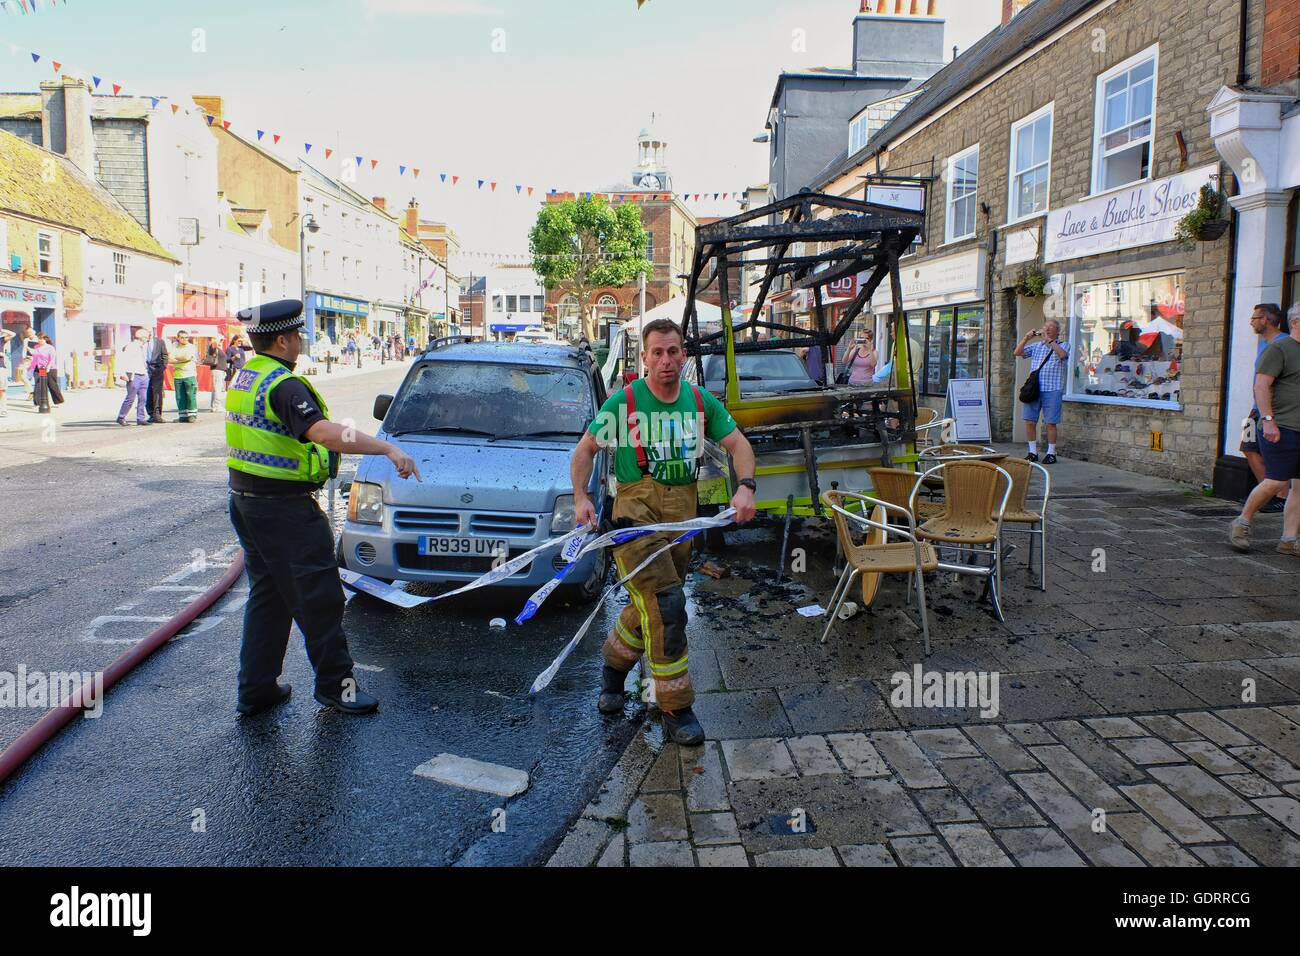 Bridport, Dorset, UK. 20 July 2016. Bridport's crowded historic Wednesday market was closed when a market stall - Stock Image